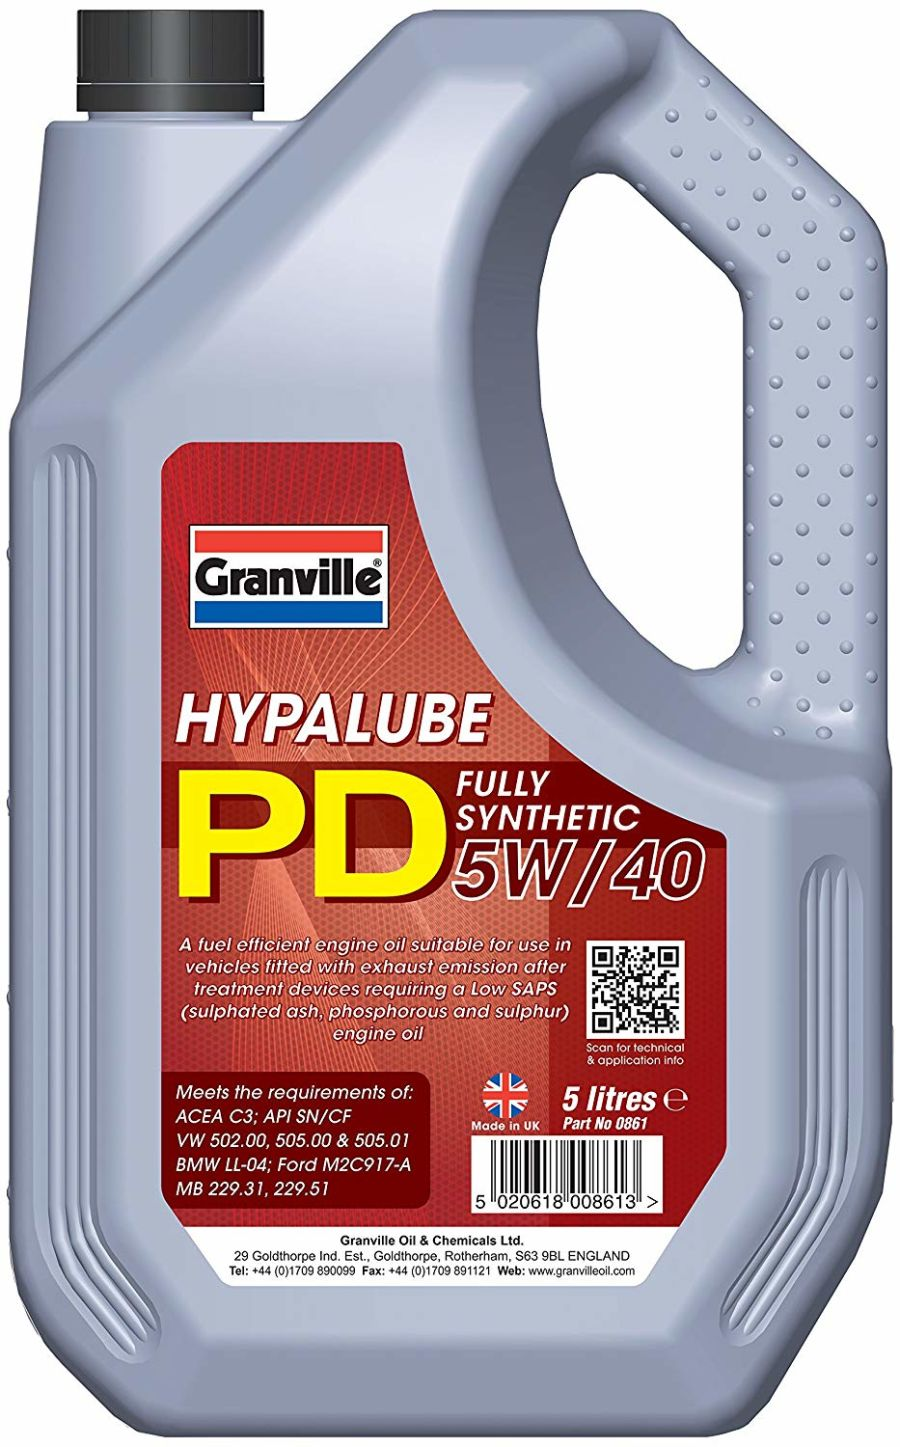 Granville Hypalube PD 5W/40 Engine Oil, 5 Litres